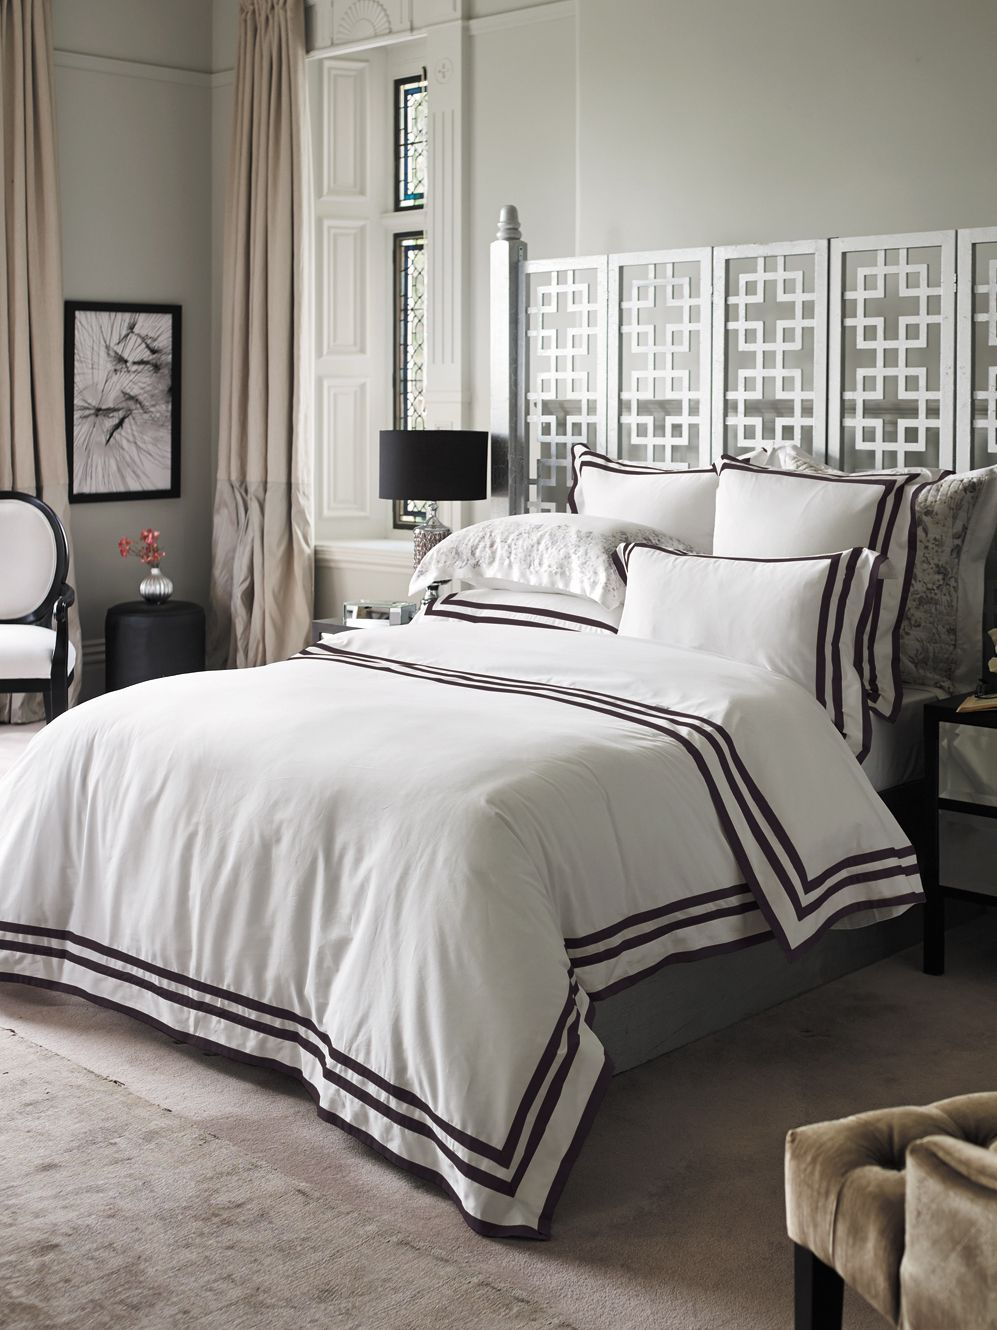 Holroyd ebony square pillowcase timeless look